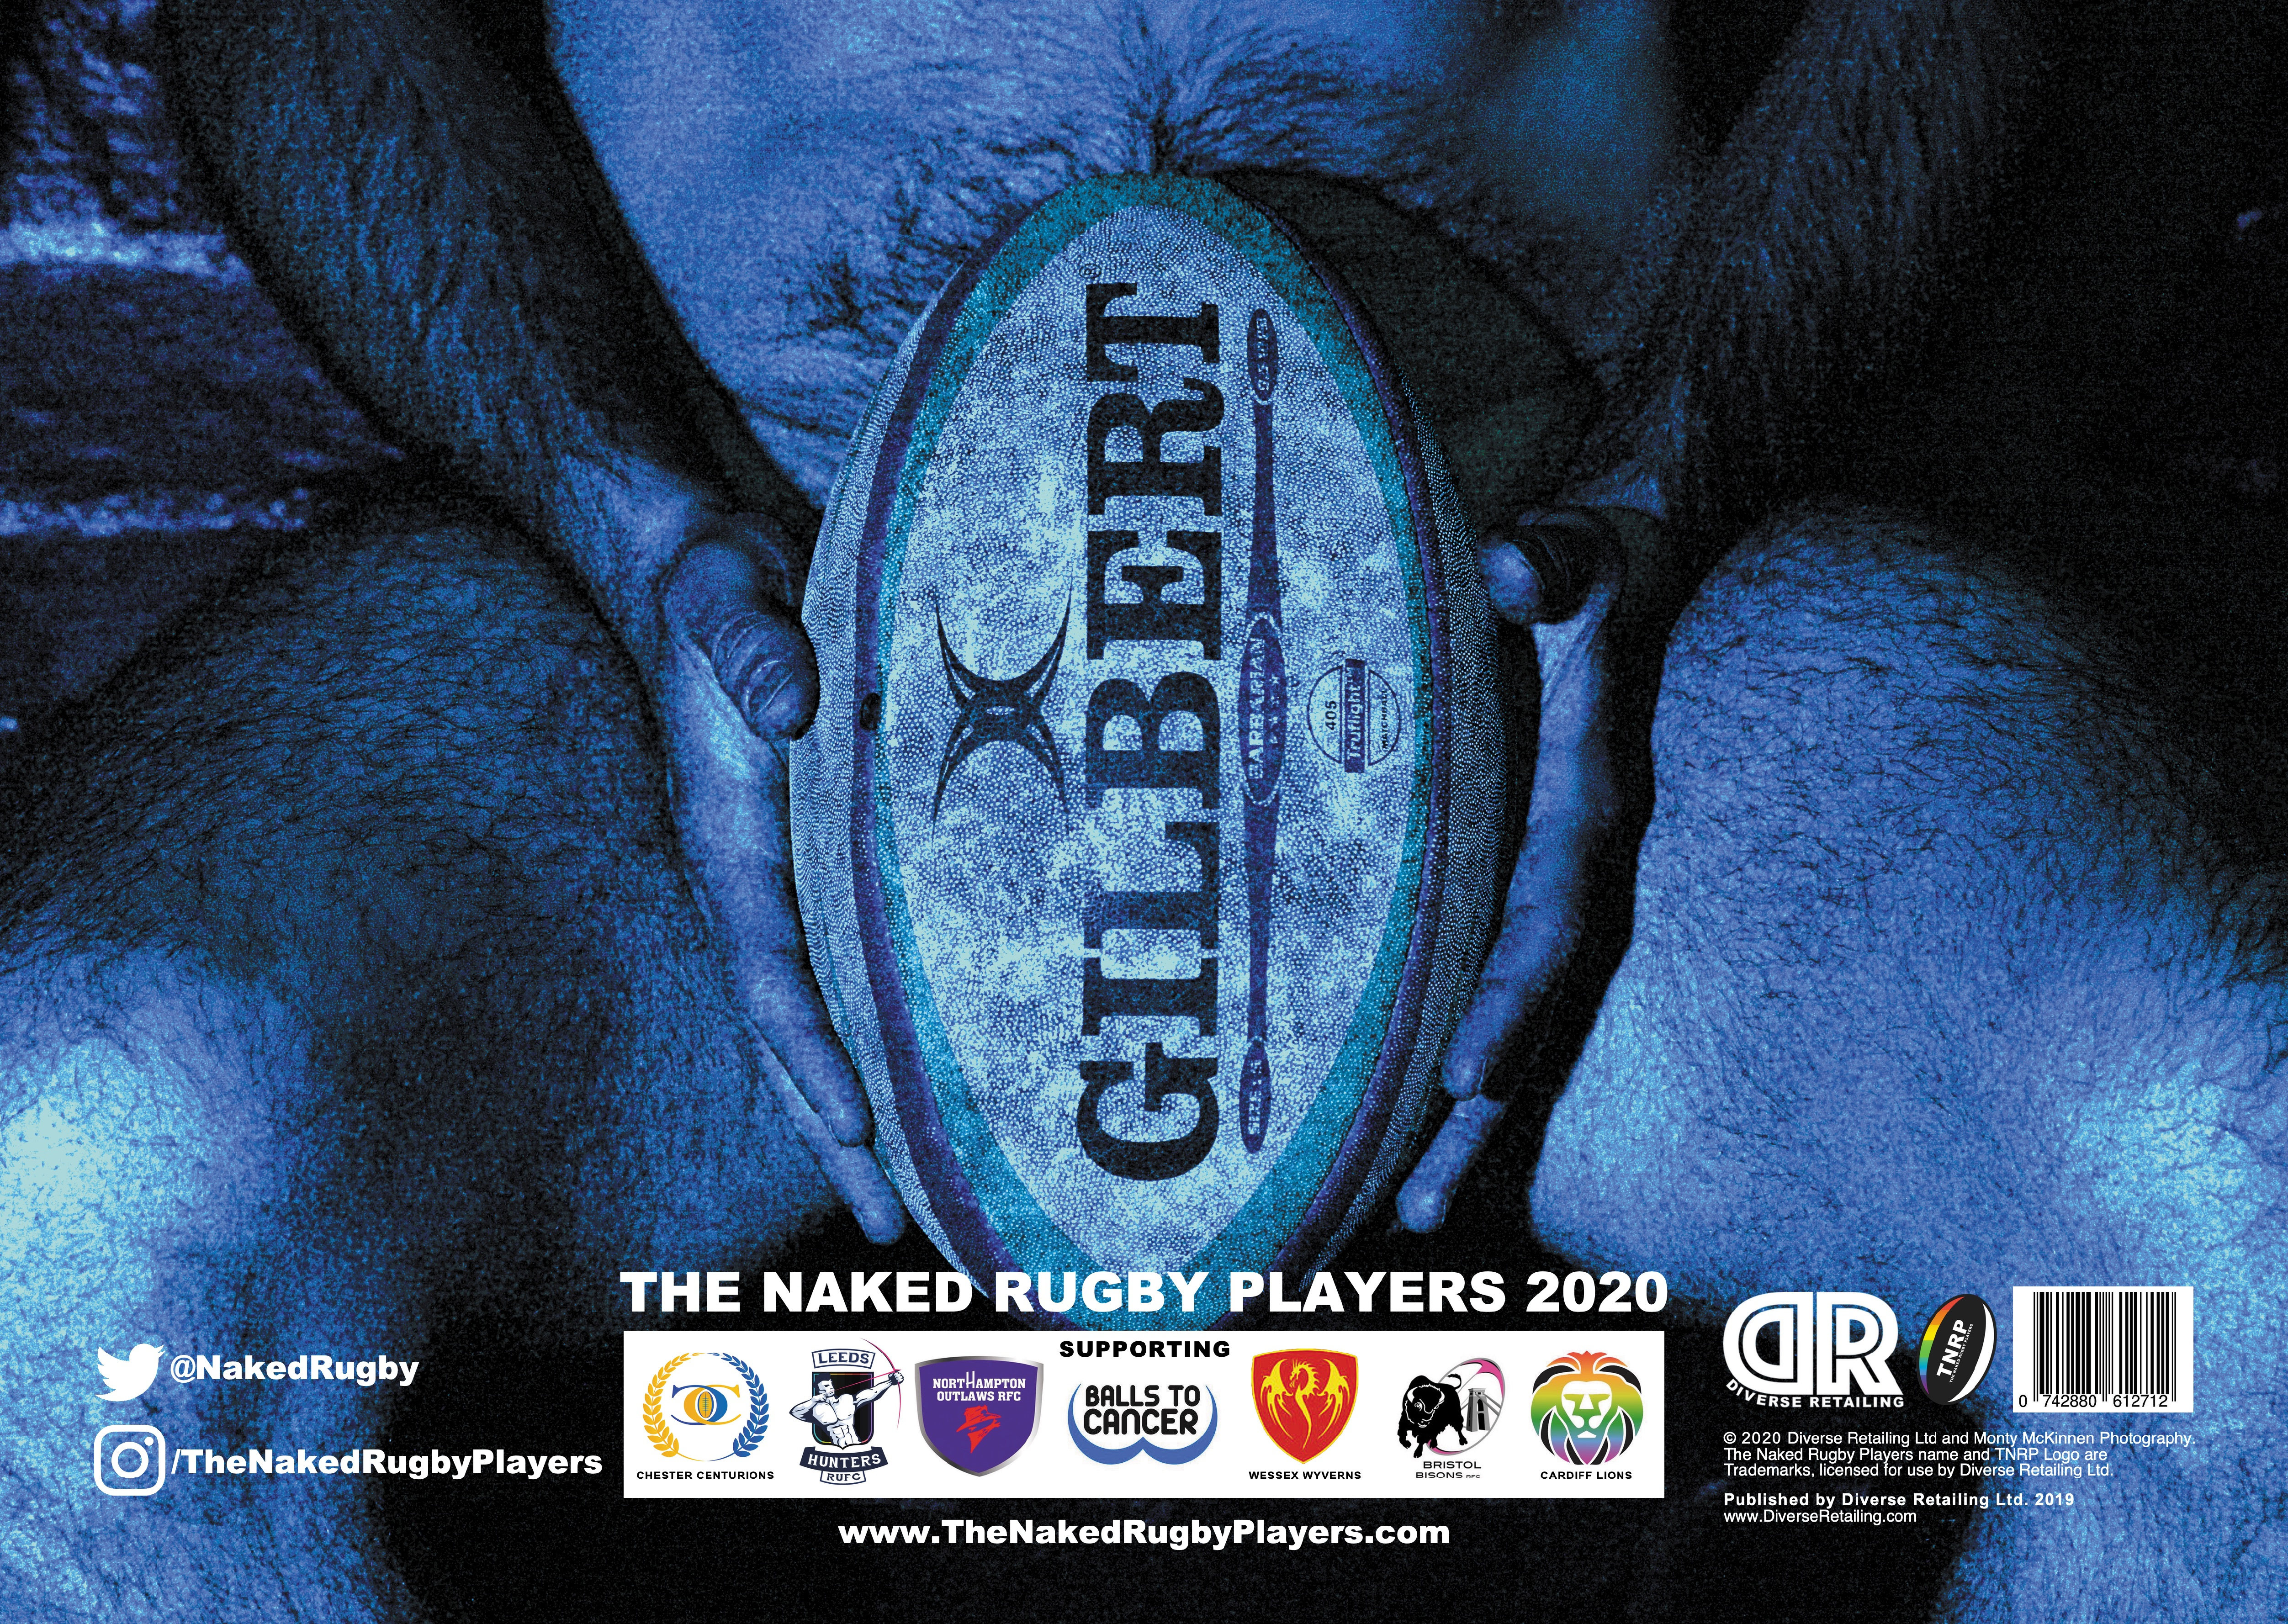 Calendrier Rugby Top 14 2020.The Naked Rugby Players Calendar 2020